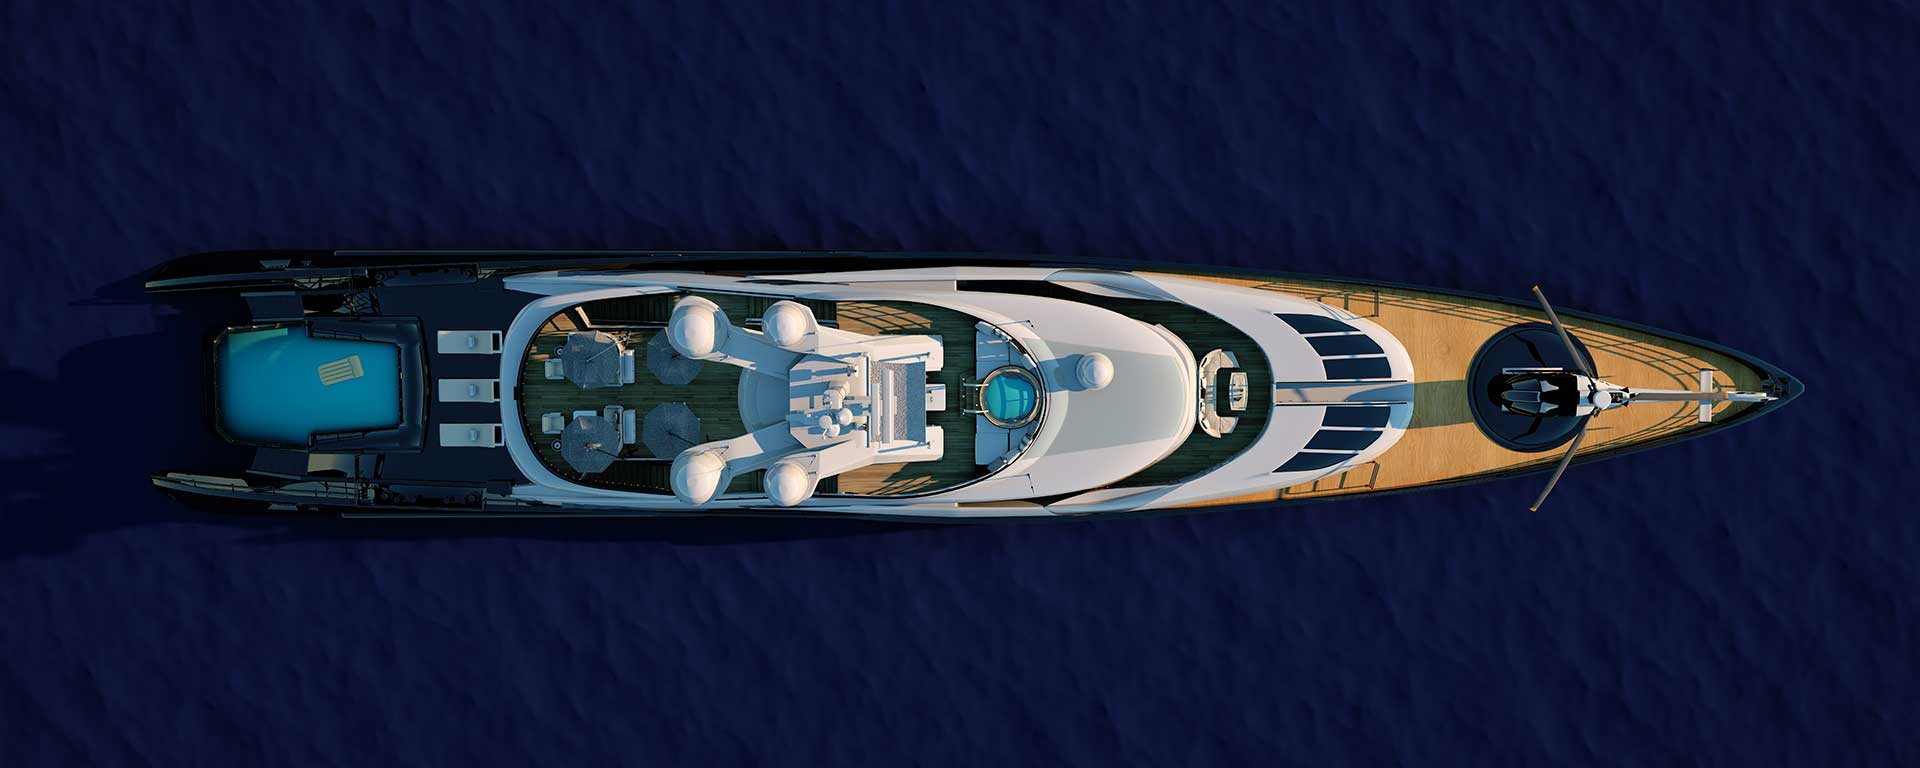 Luxury yacht aerial